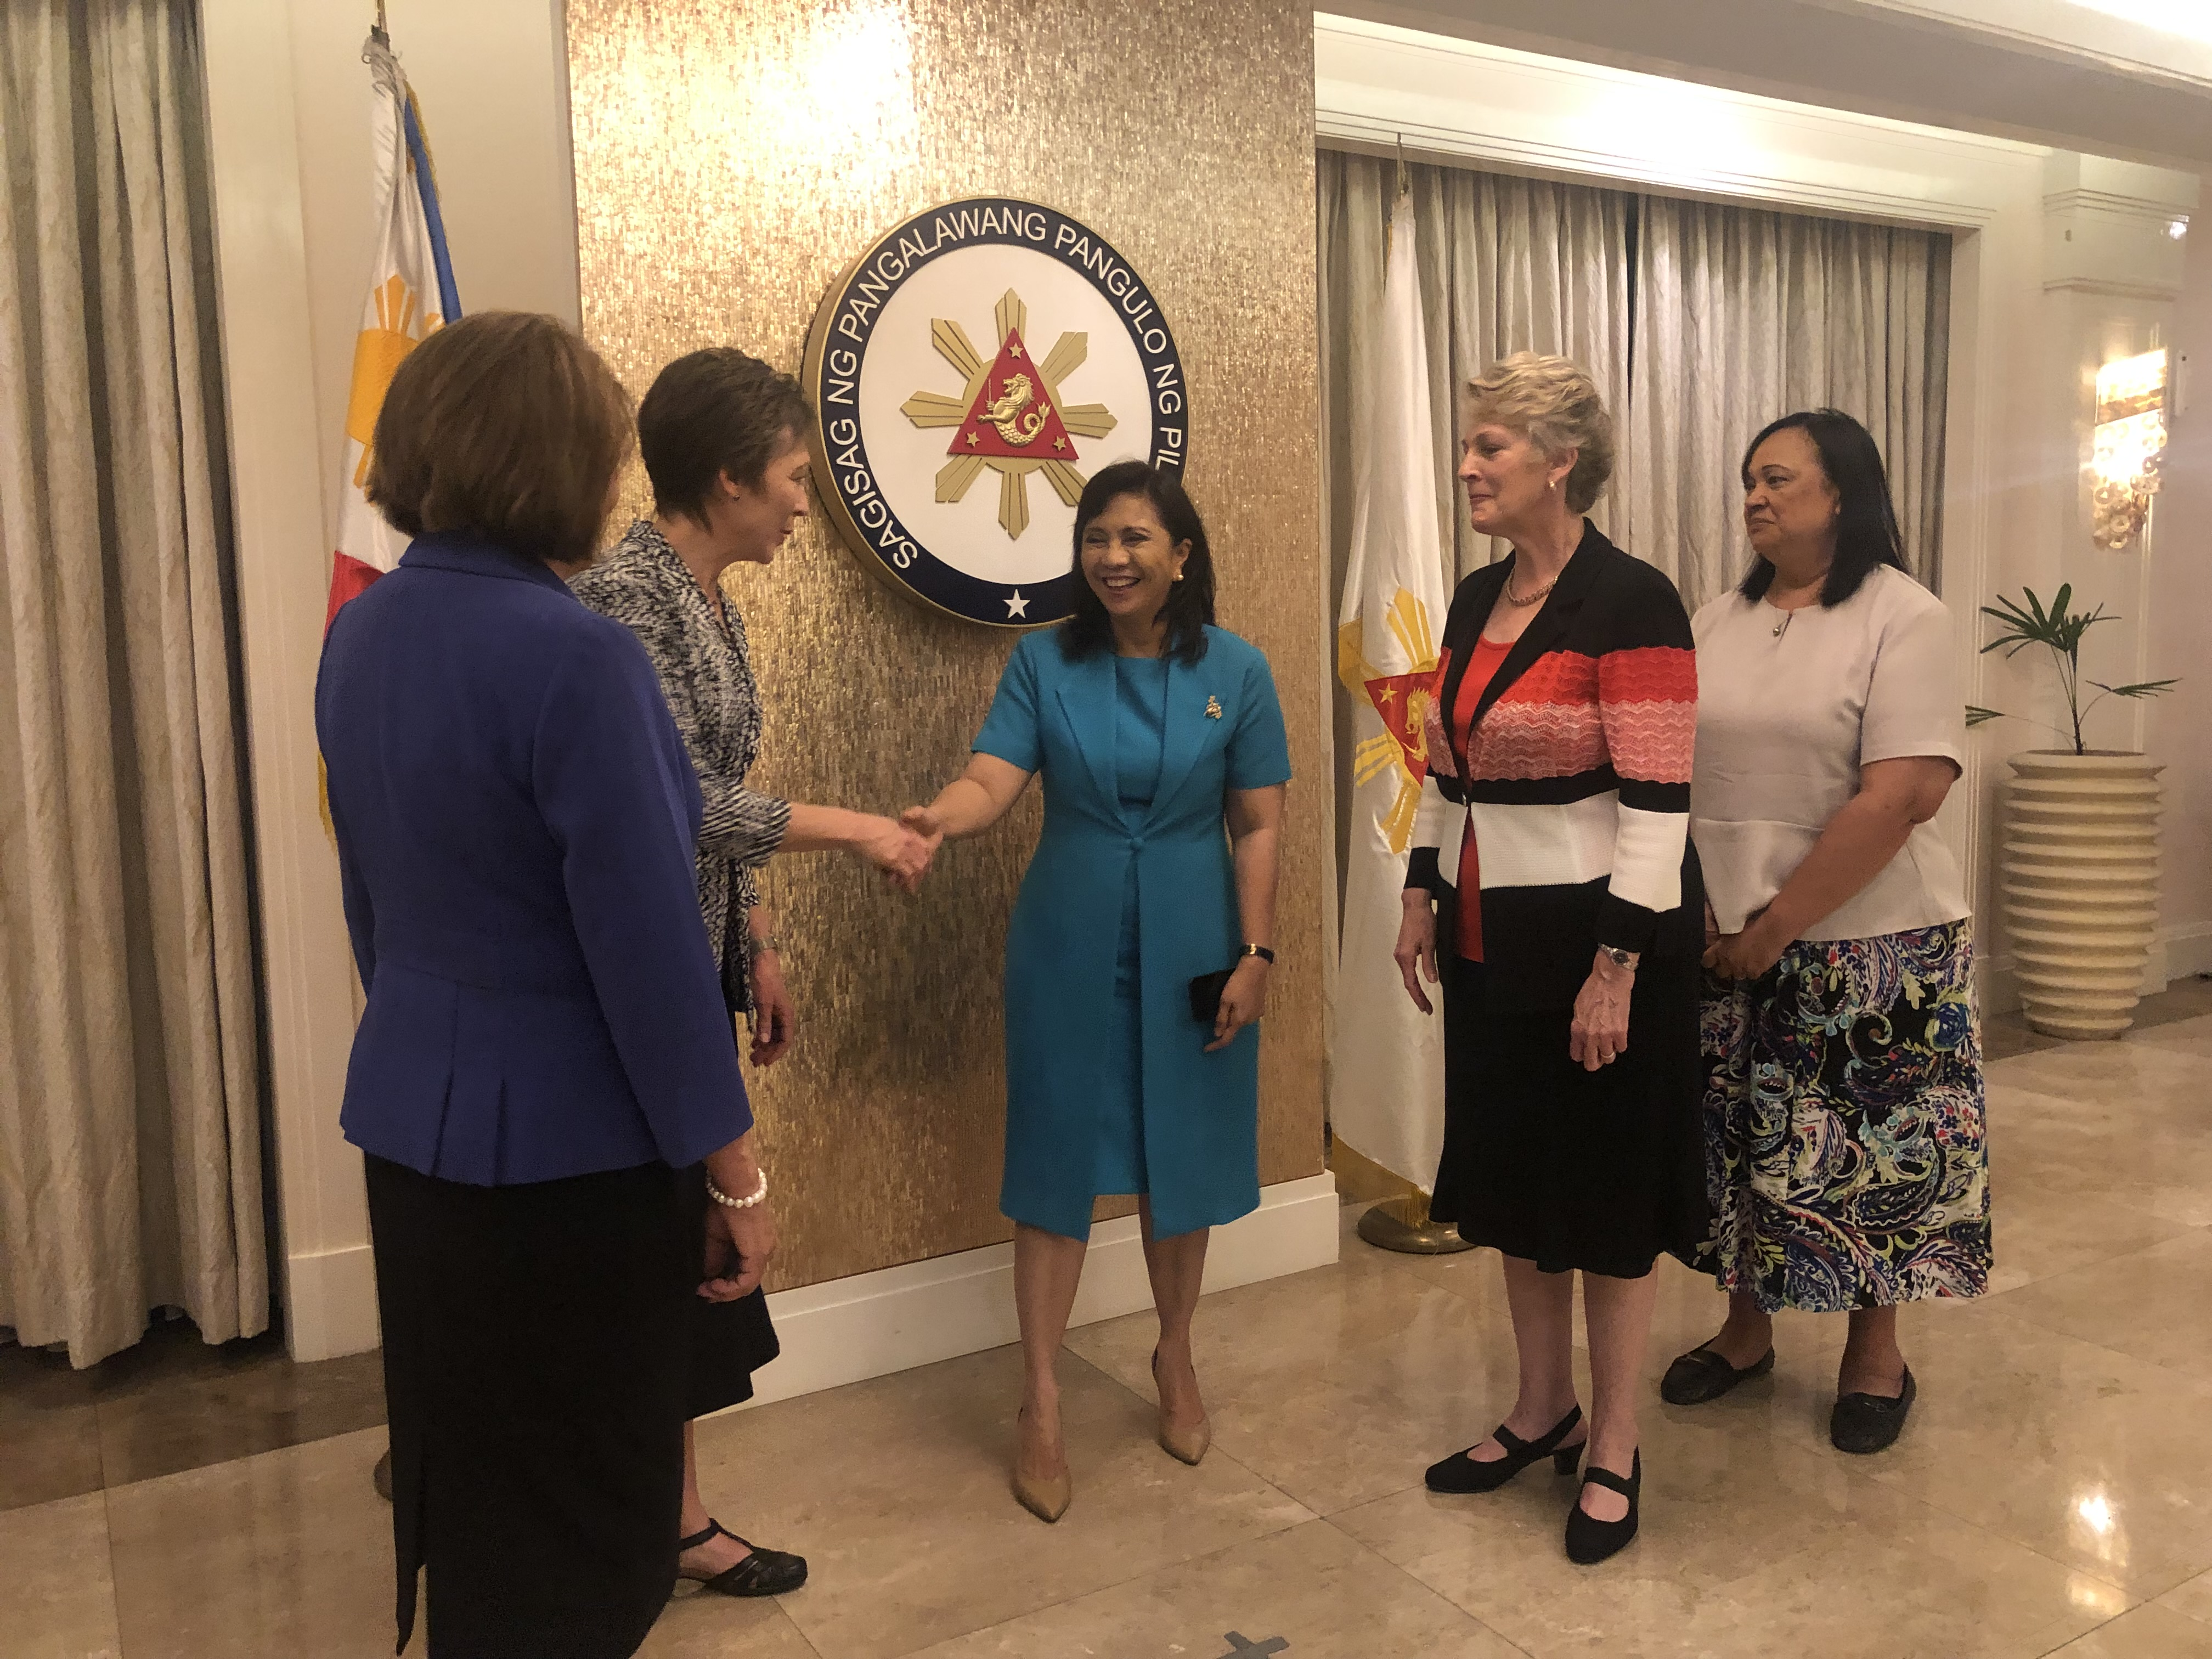 Filipino Vice President Leni Robredo shakes hands with Lynette Cook after meeting with her and Cindy Schmutz, Ruth Renlund and Anita Wakolo in the Philippines.